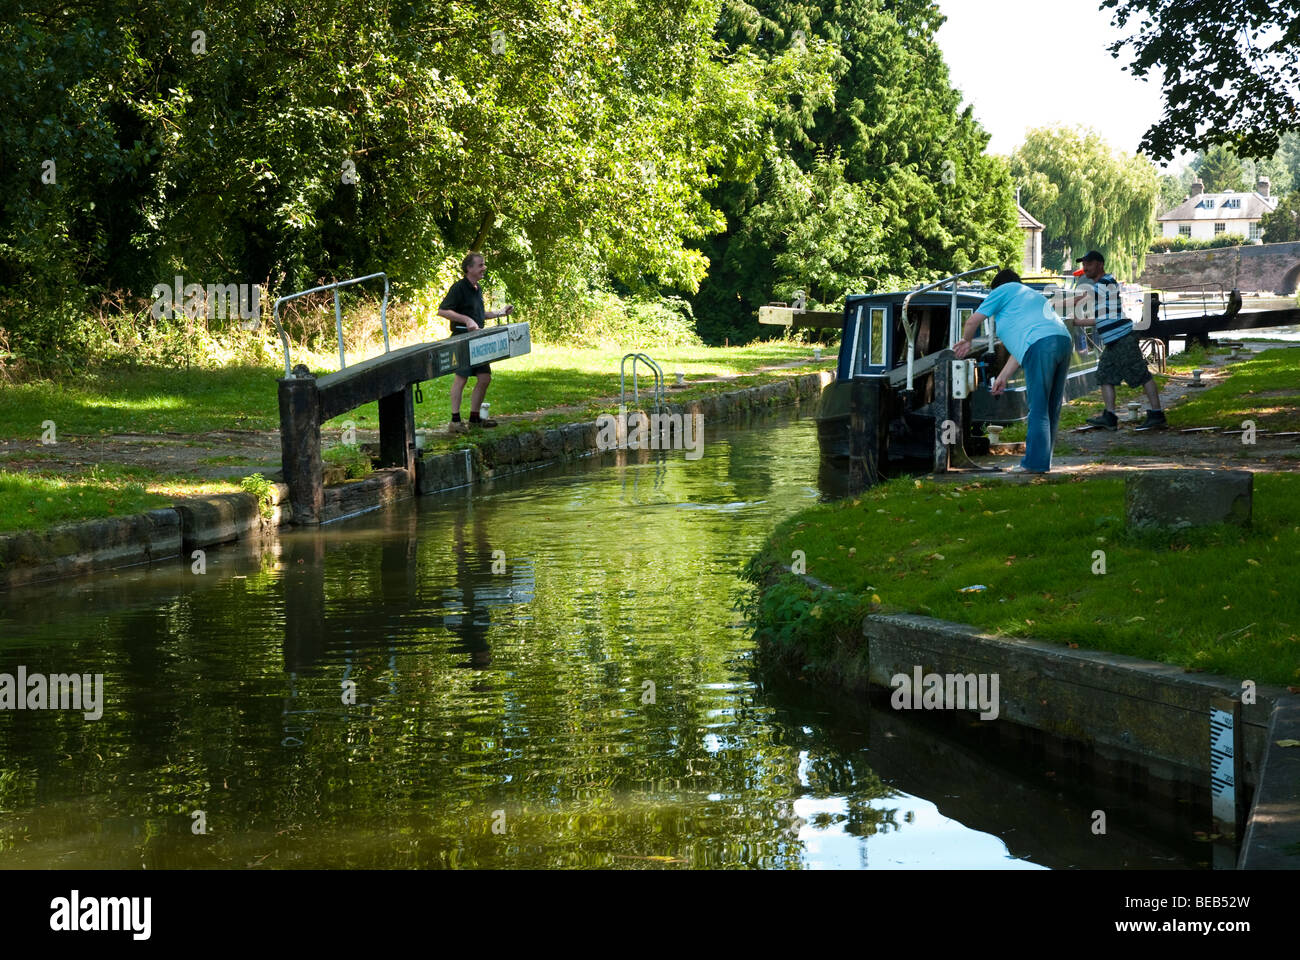 Man and woman opening lock gate for Narrow Boat  at Hungerford on the Kennet and Avon Canal - Stock Image